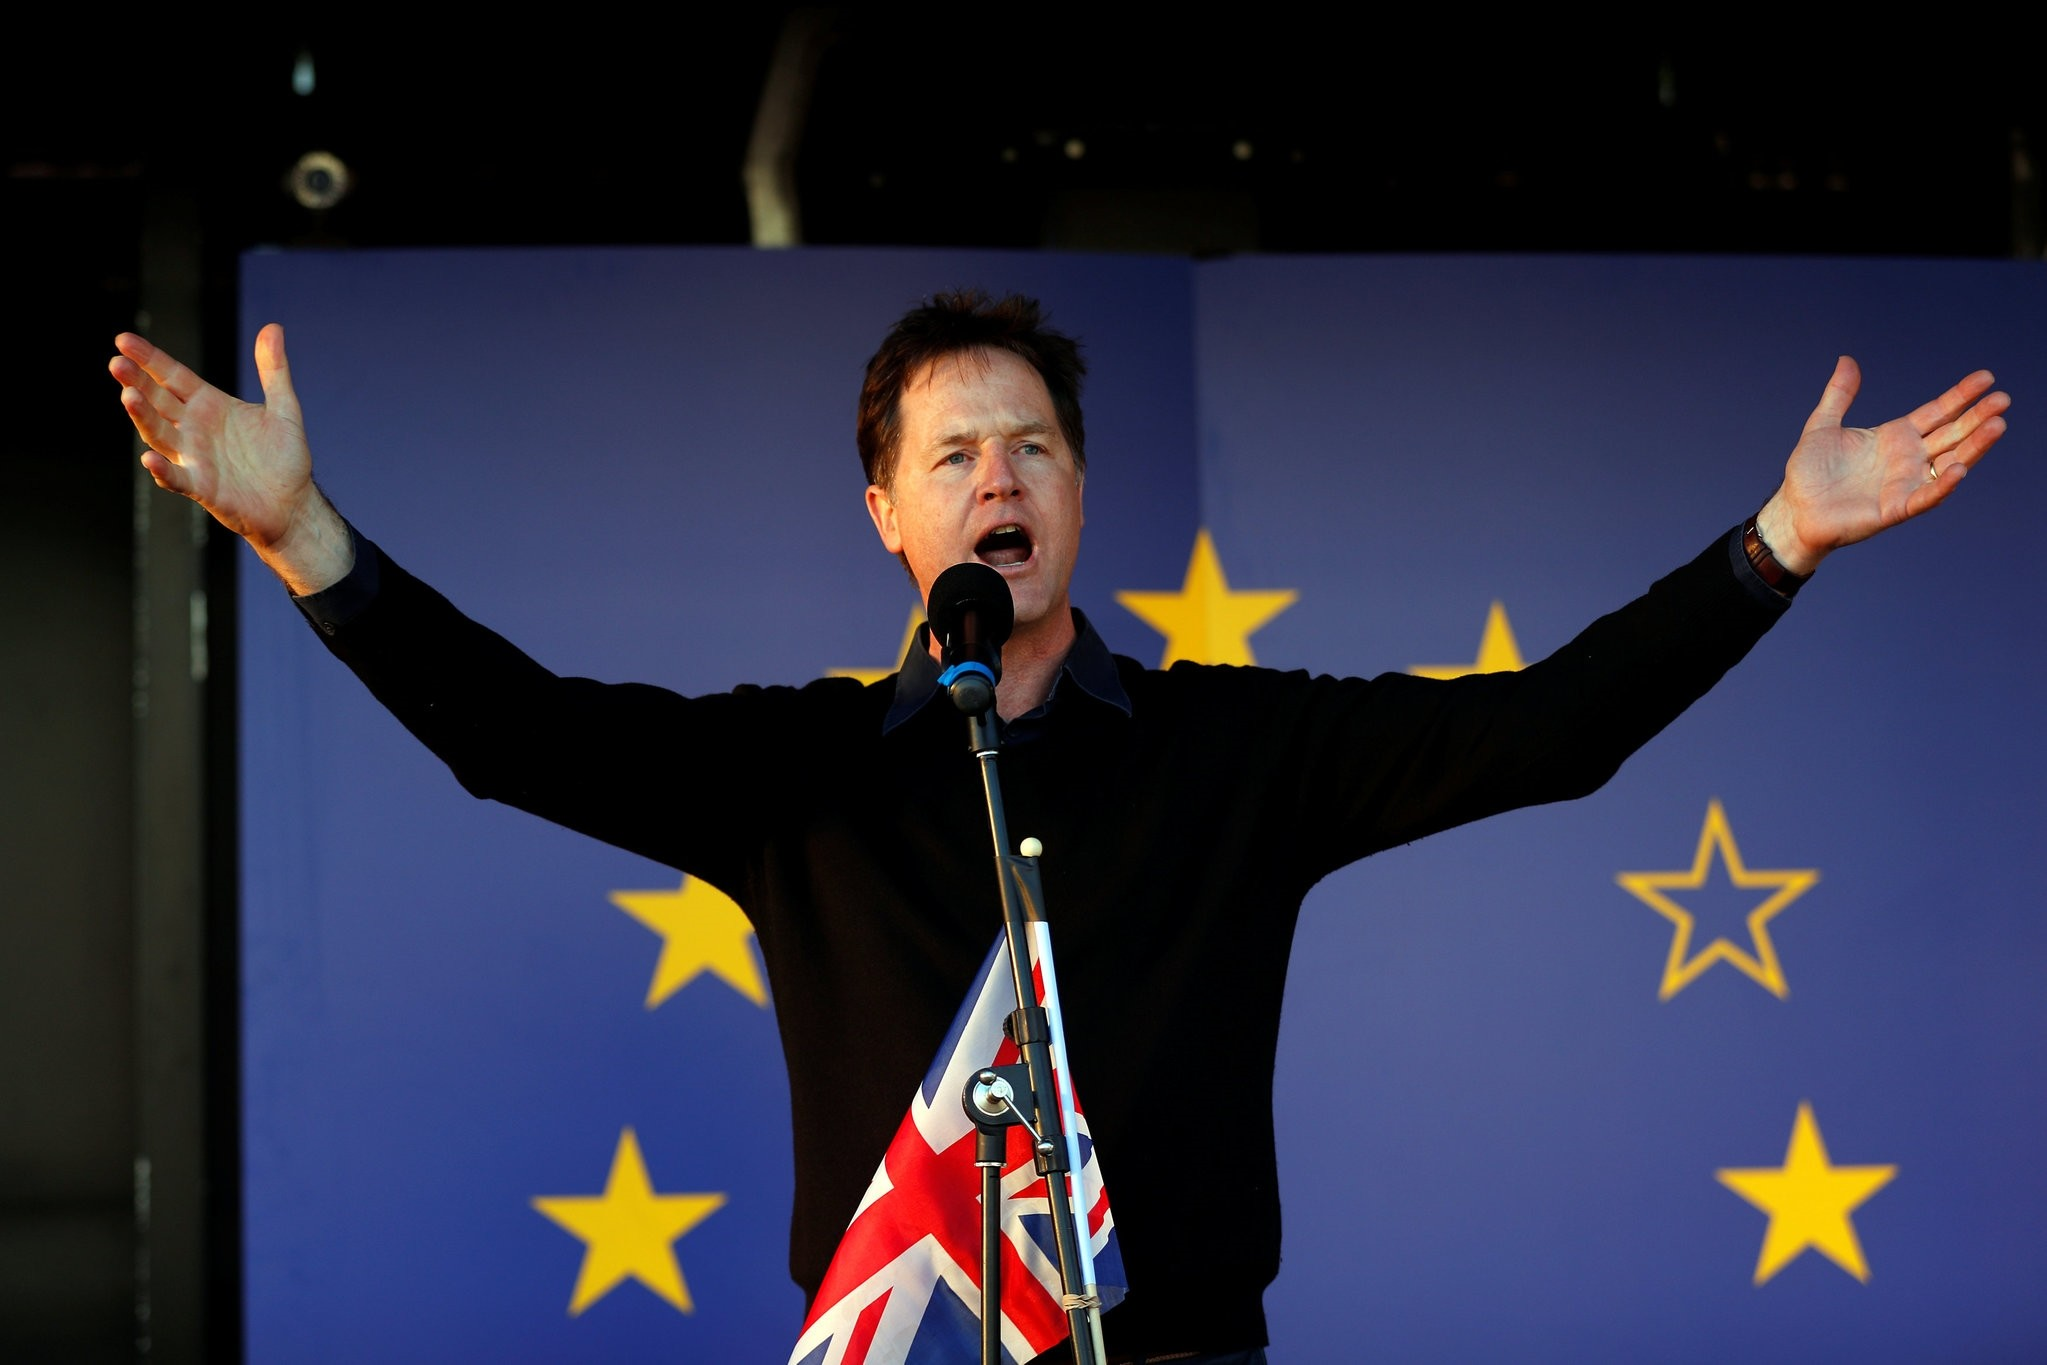 Former Liberal Democrat leader Nick Clegg speaks at a Unite for Europe rally in central London, March 25, 2017.